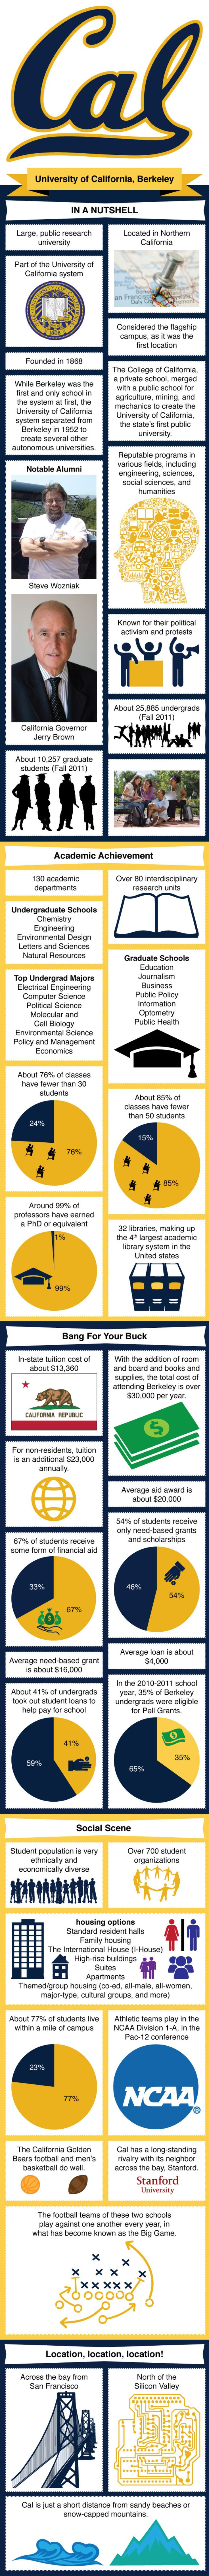 University of California, Berkeley  Infographic